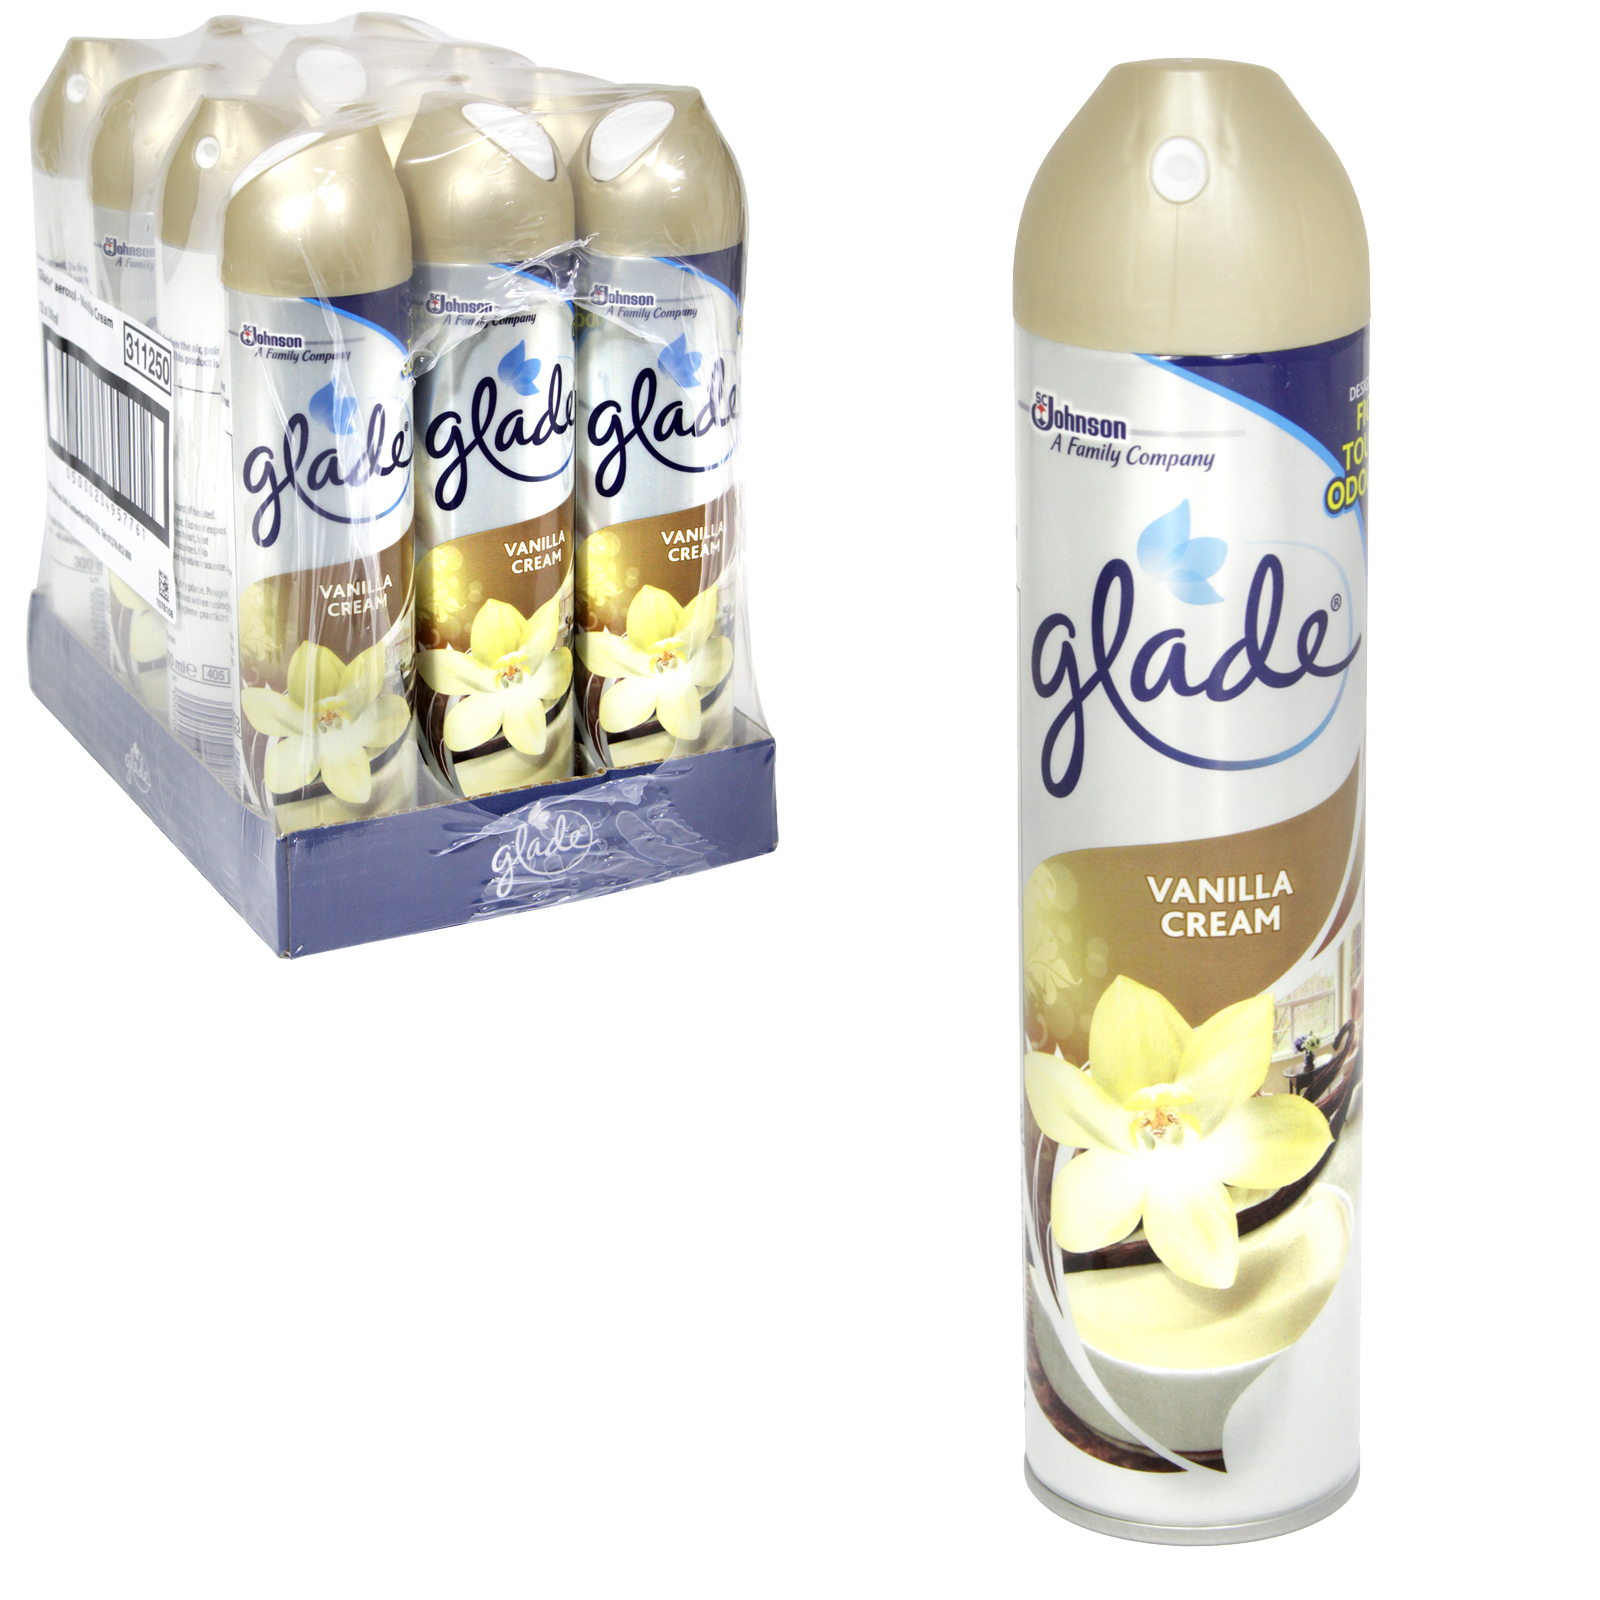 GLADE SILVER 300ML VANILLA CREAM X12